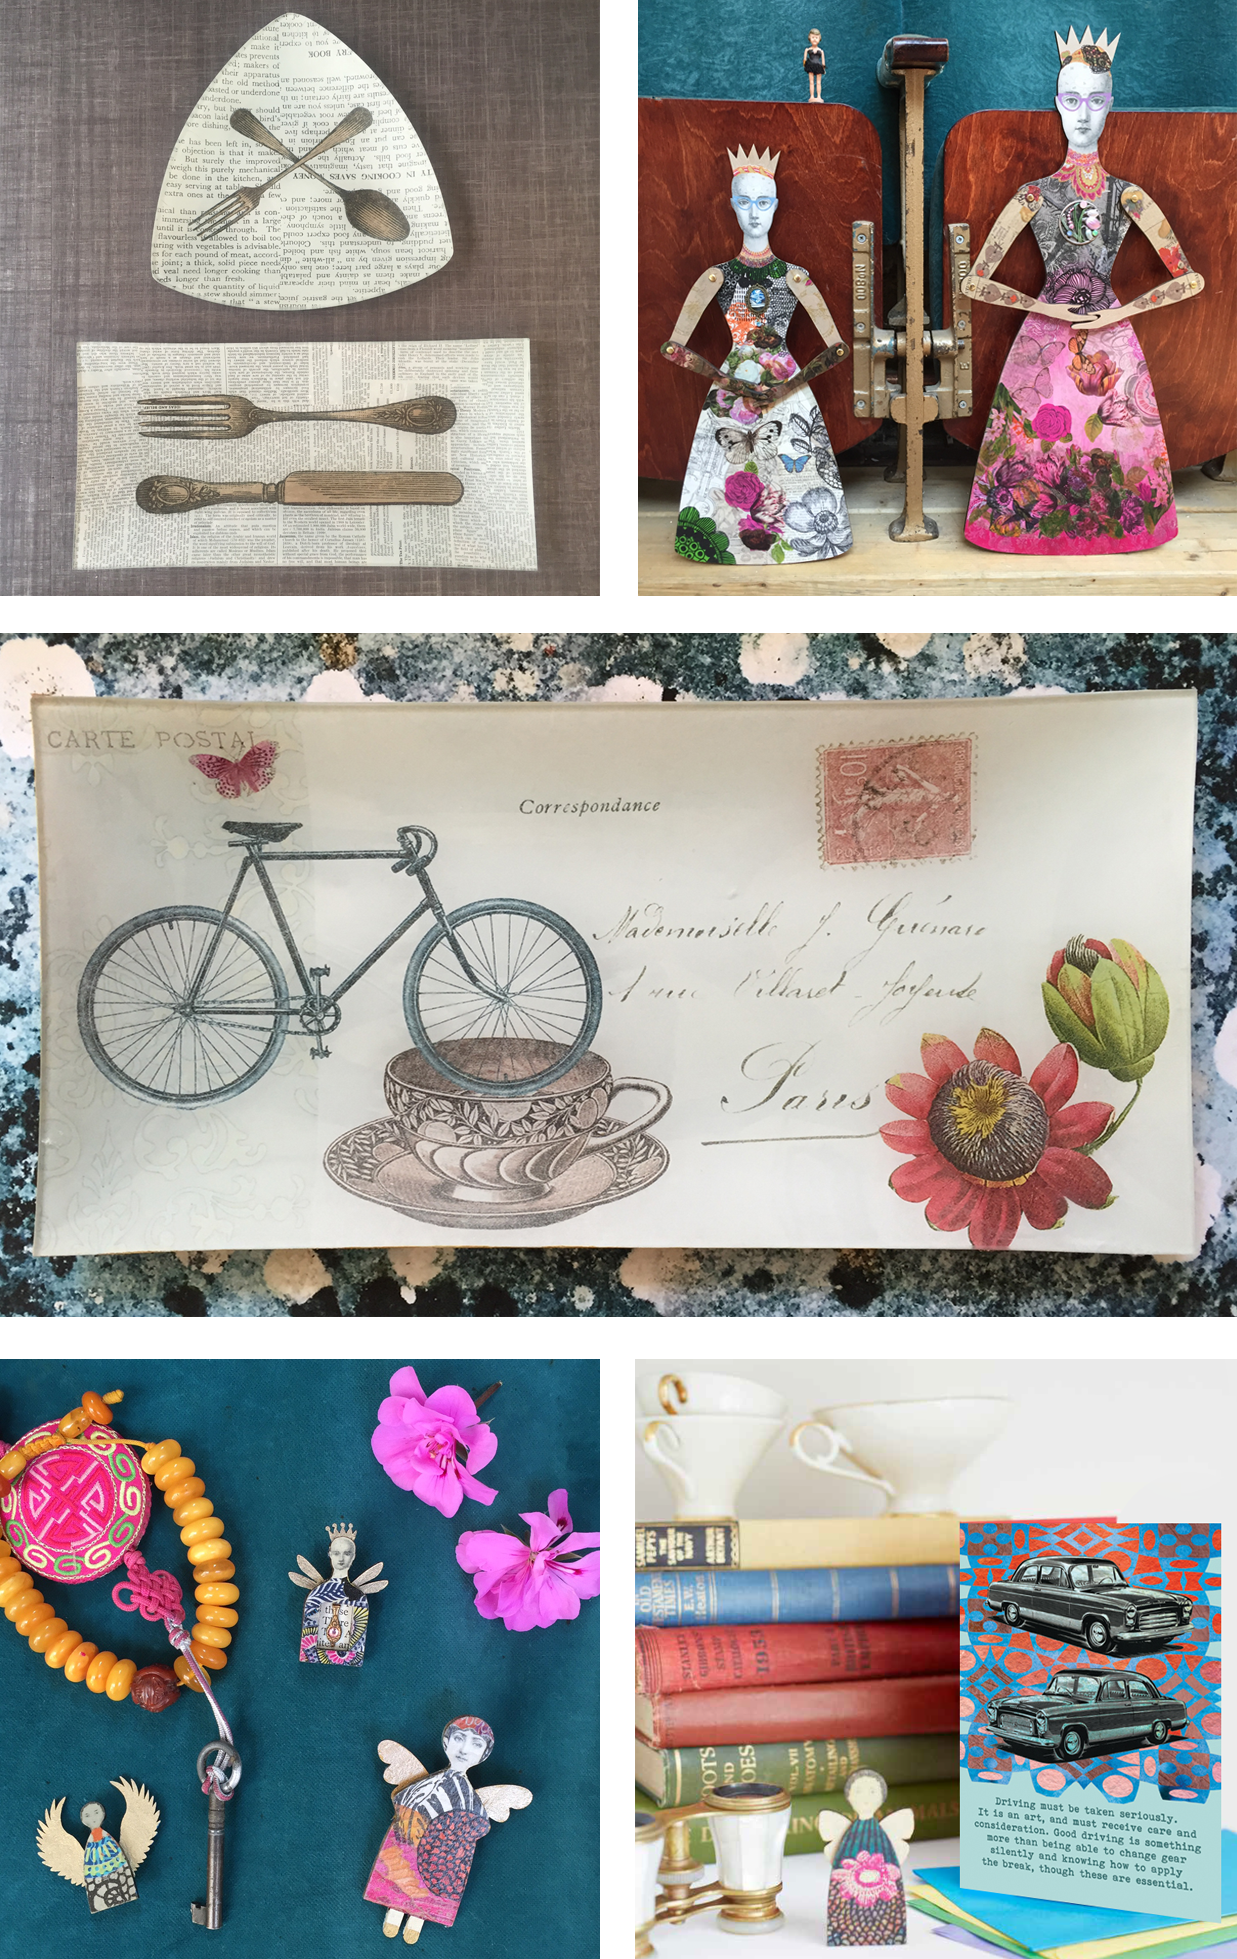 decoupaged glass, art dolls, brooches, cards